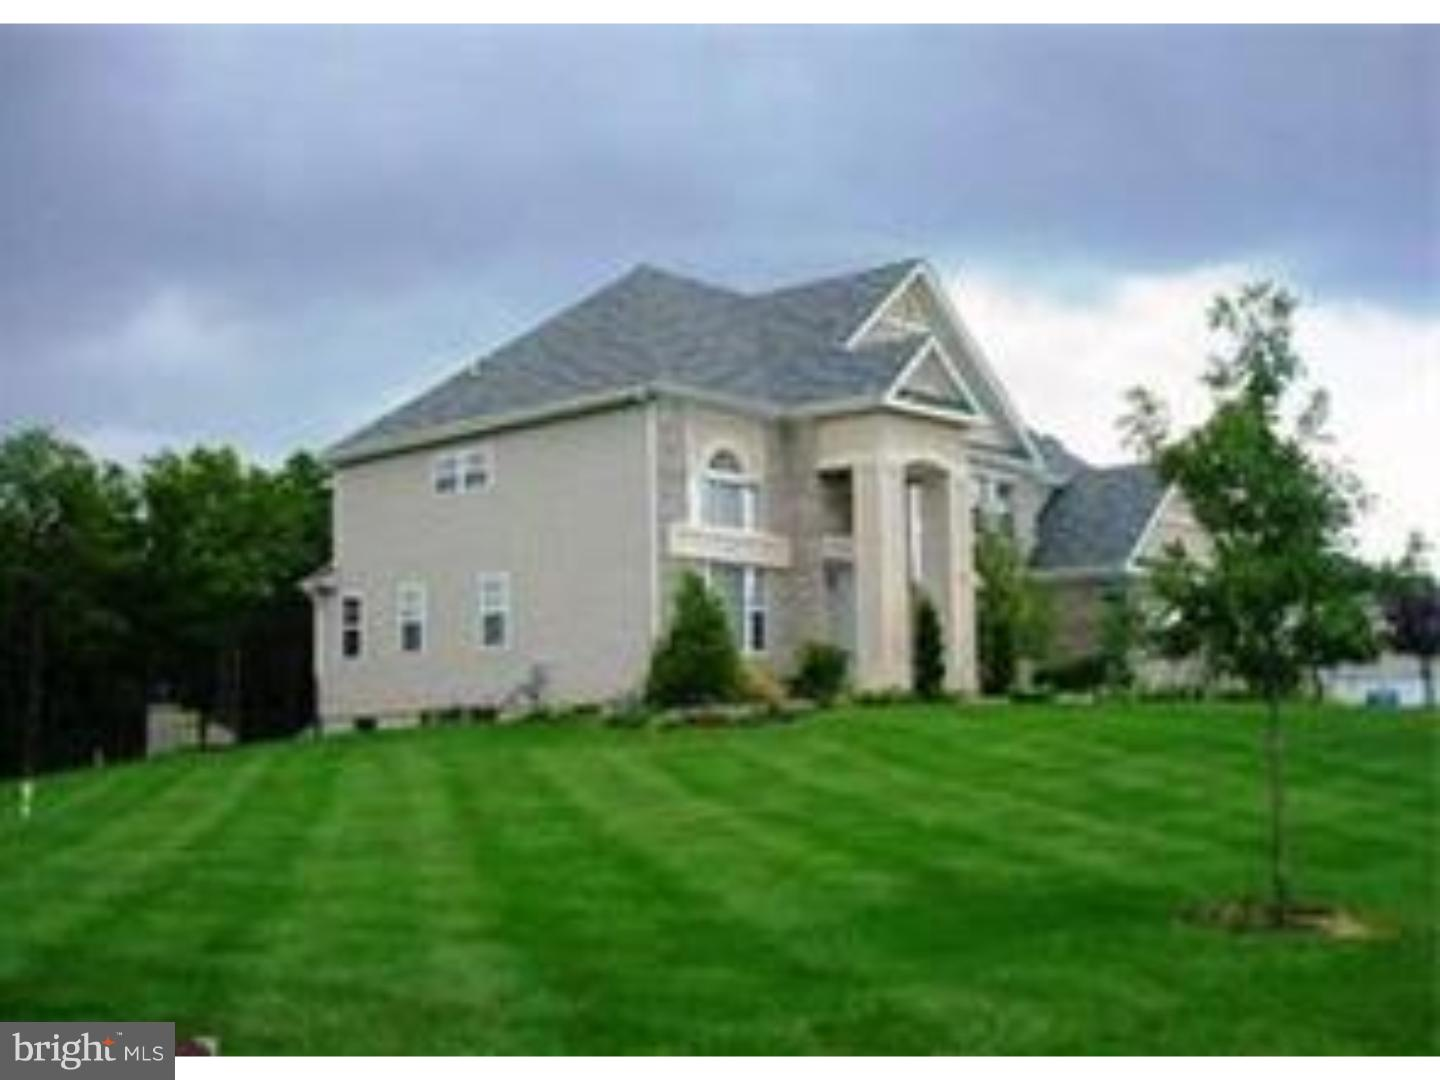 Single Family Home for Sale at 11 FOX HOLLOW Drive Jackson, New Jersey 08527 United States